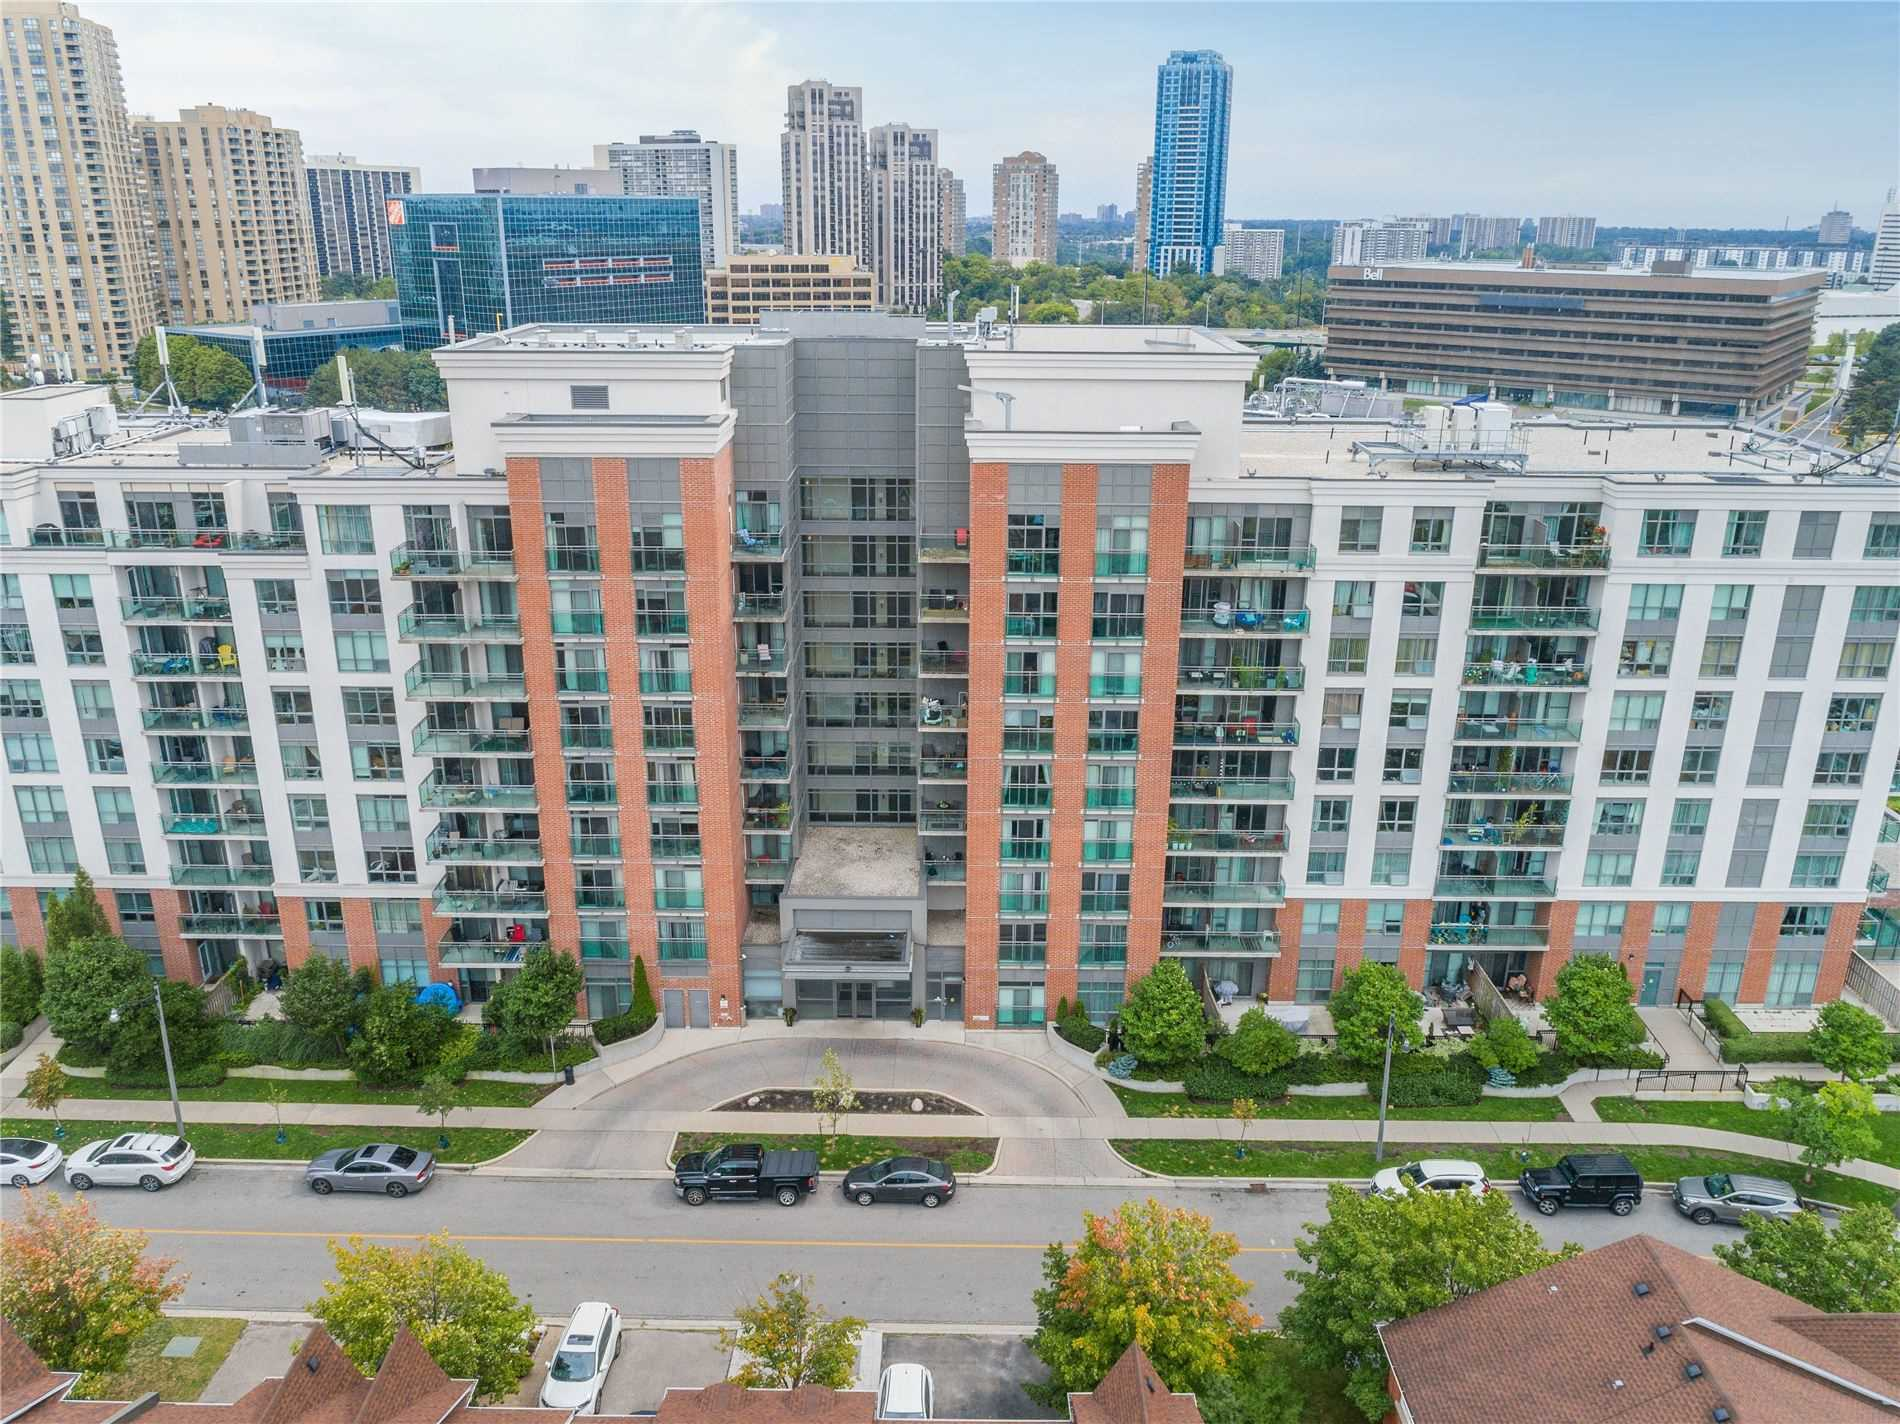 120 Dallimore Circ, Toronto, Ontario M3C4J1, 1 Bedroom Bedrooms, 3 Rooms Rooms,1 BathroomBathrooms,Condo Apt,For Sale,Dallimore,C4906943